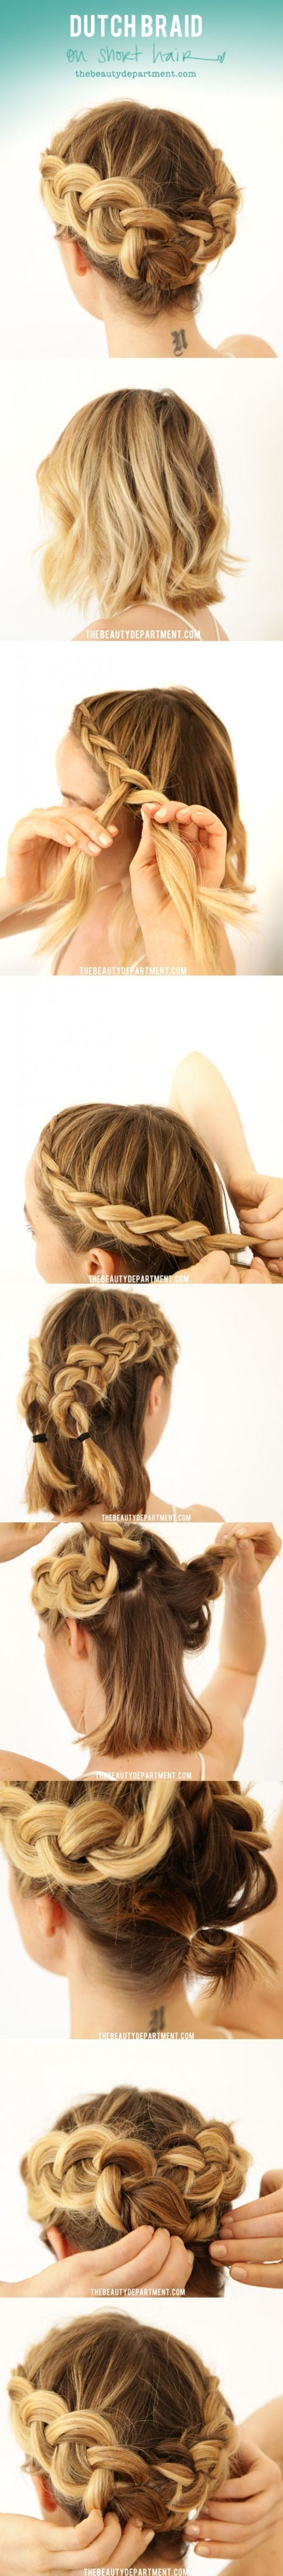 Dutch Braid on Short Hair